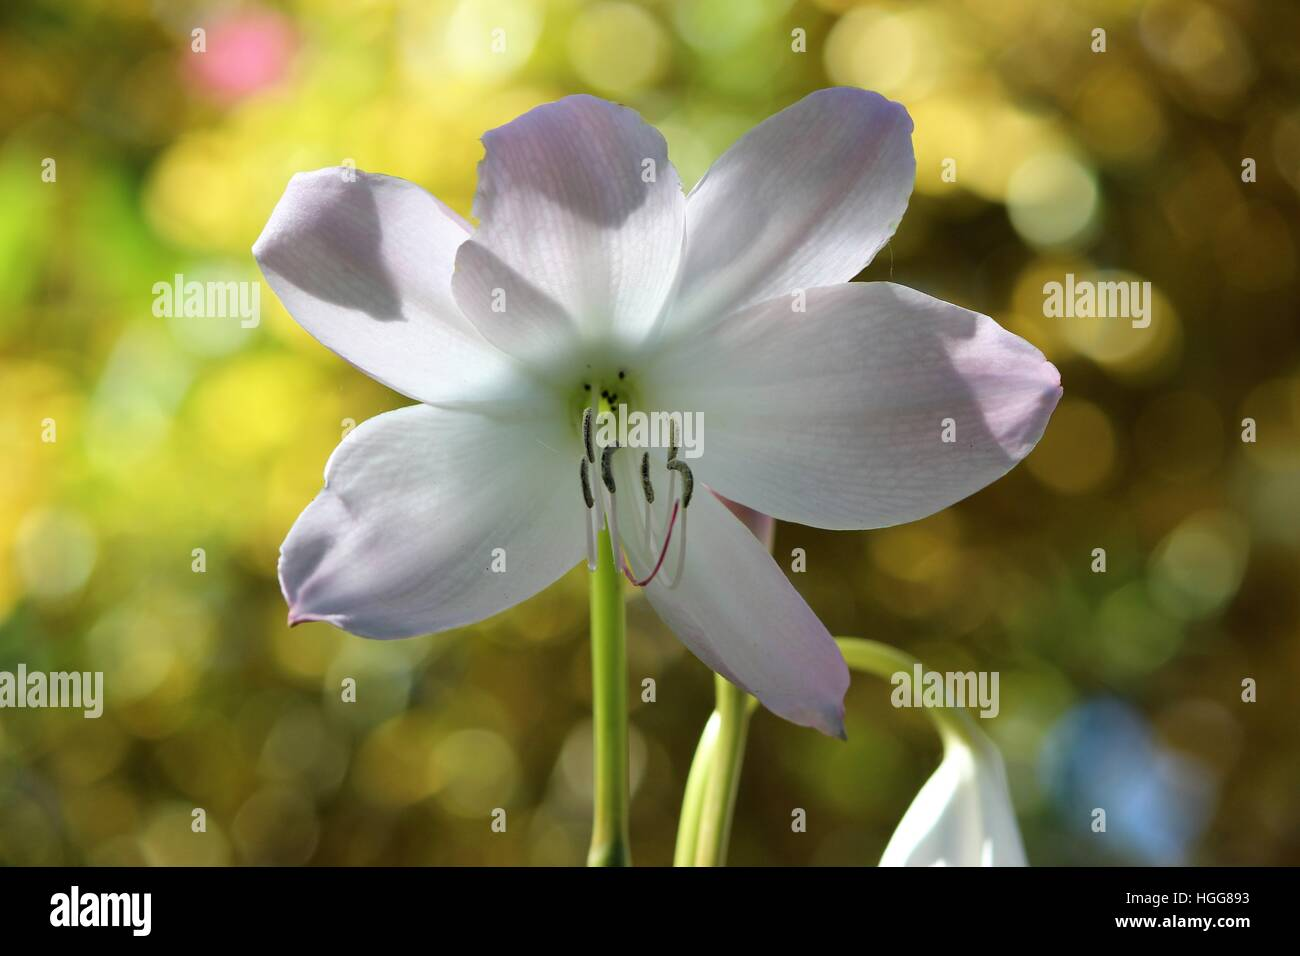 flower close up blurred background - Stock Image